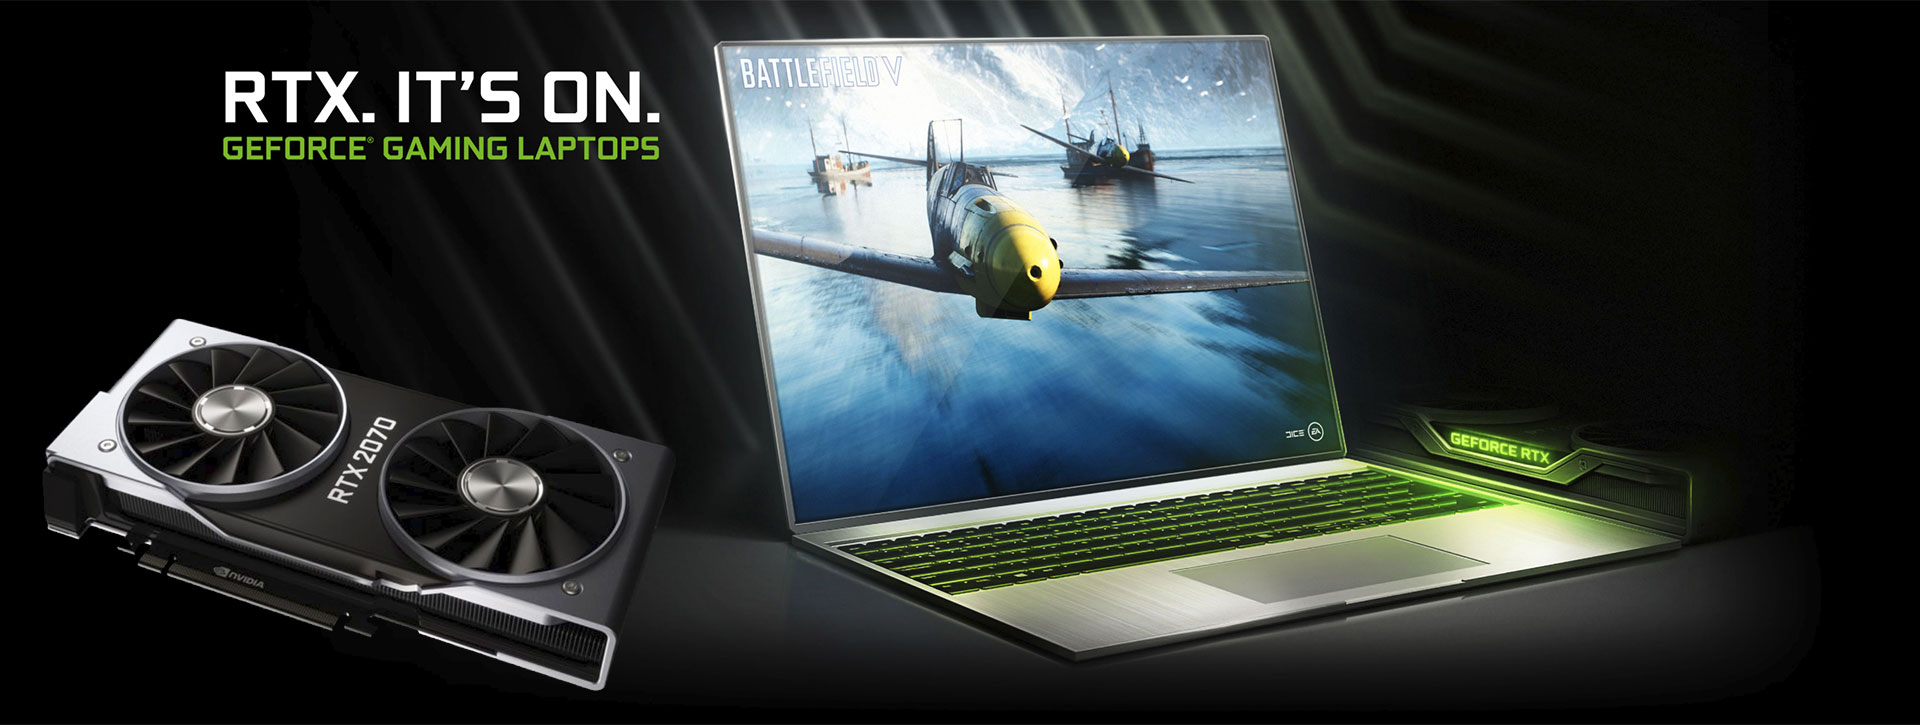 Laptops with Nvidia RTX 2070 / 2070 Max-Q graphics (the